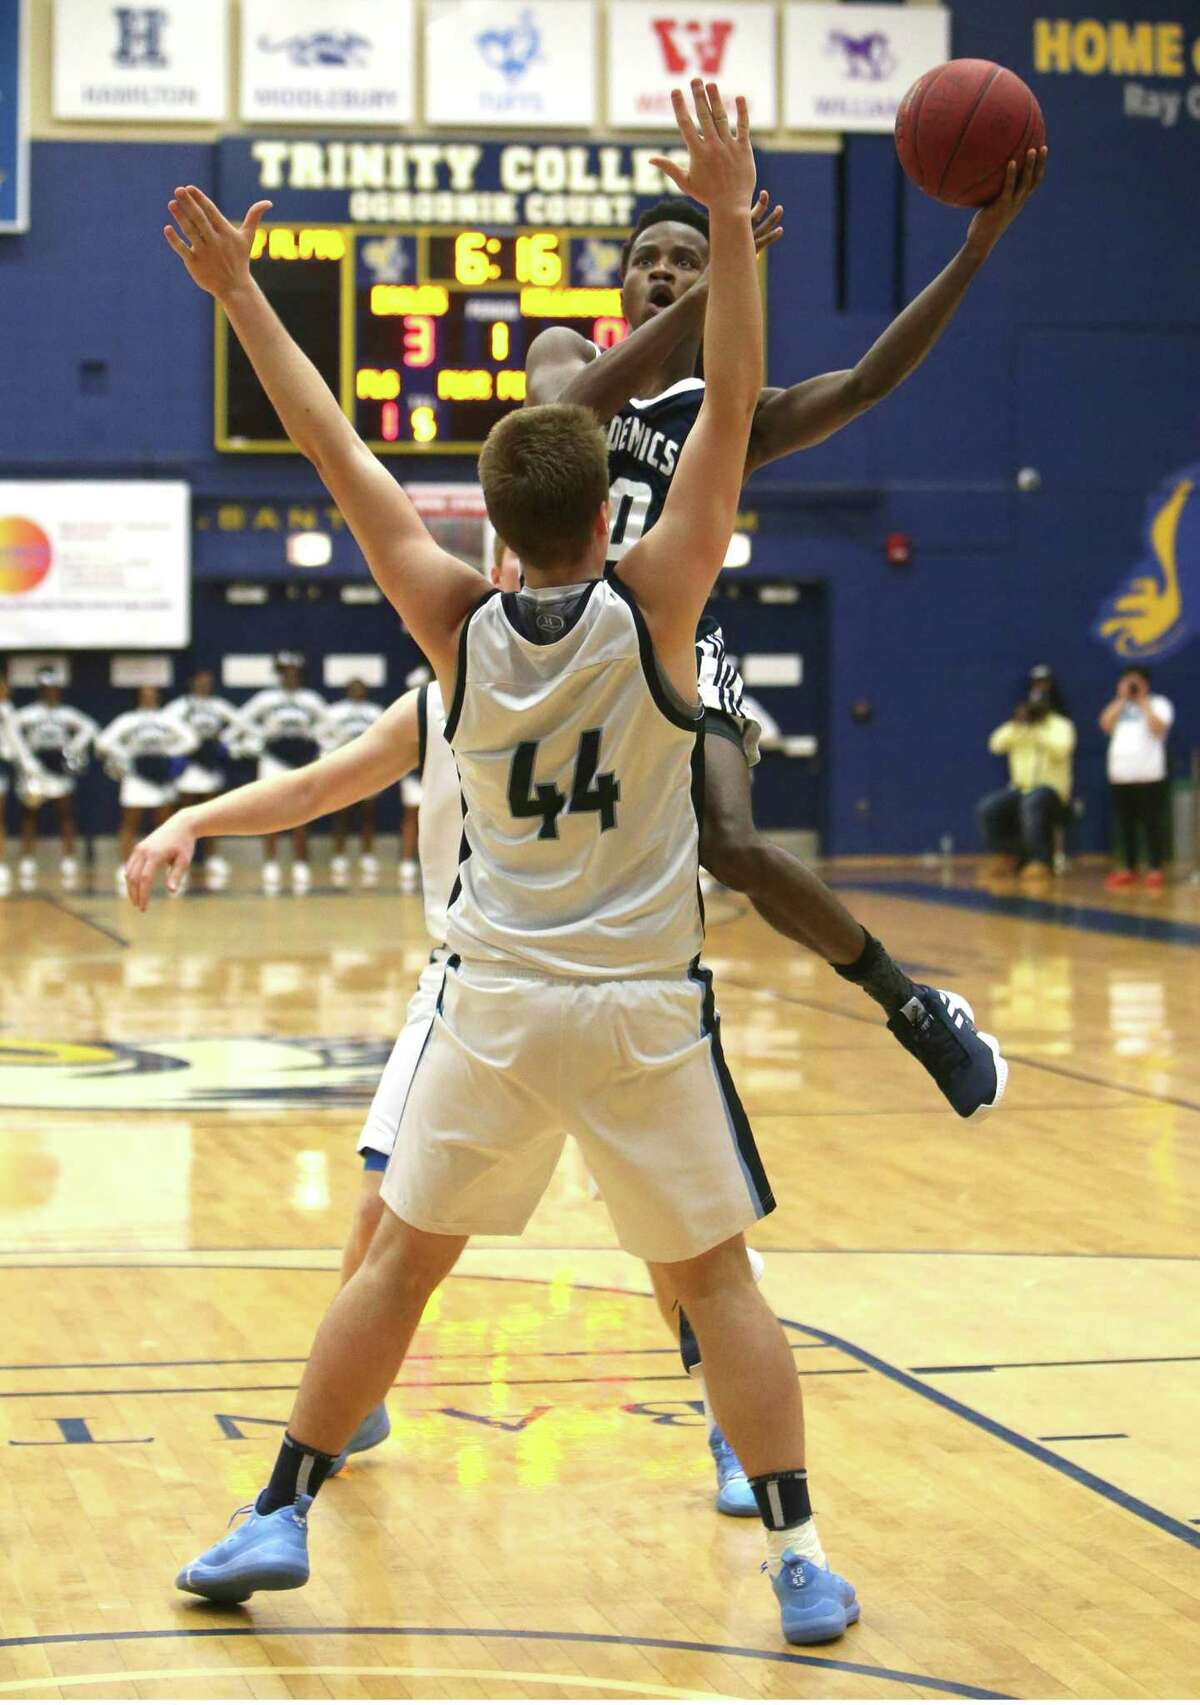 Hillhouse High School?'s #20 goes up for a basket during the GHPA High School Basketball Classic against East Catholic High School at Trinity College in Hartford on Saturday, Dec. 15, 2018.